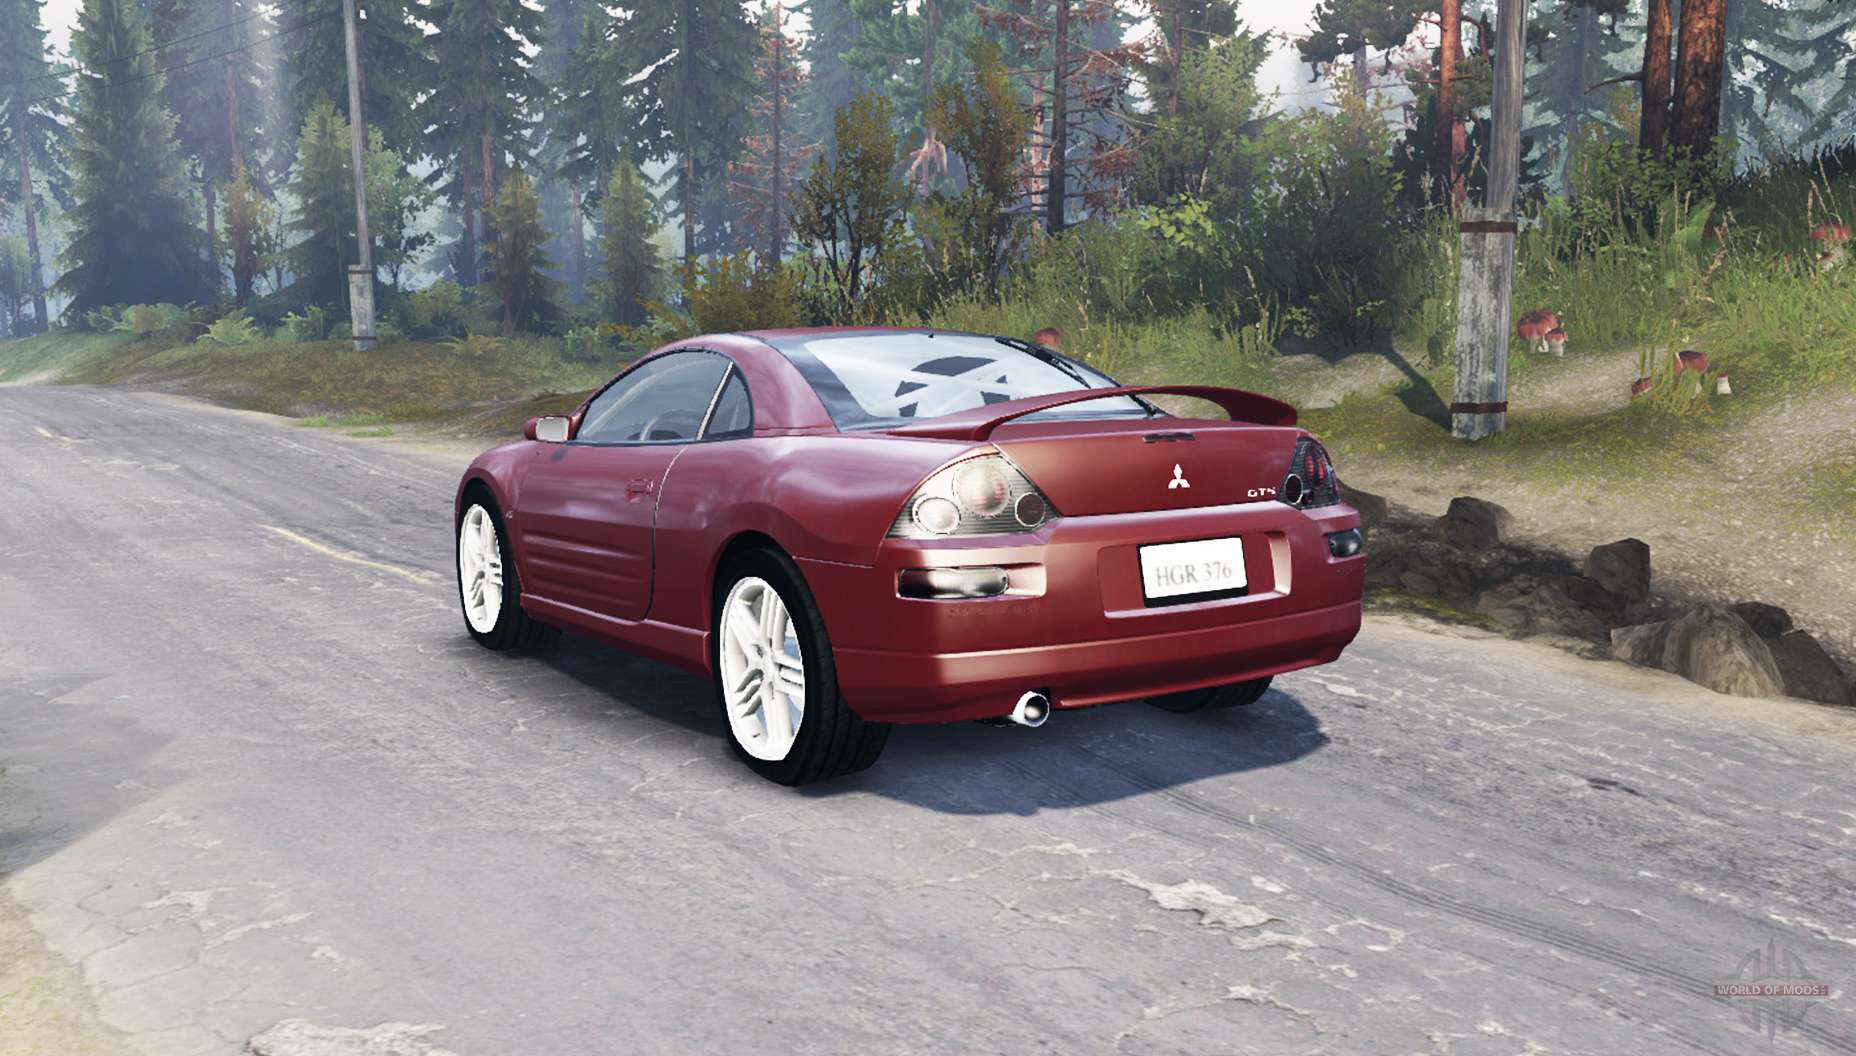 Spintires on 03 Mitsubishi Eclipse 3 0 Engine